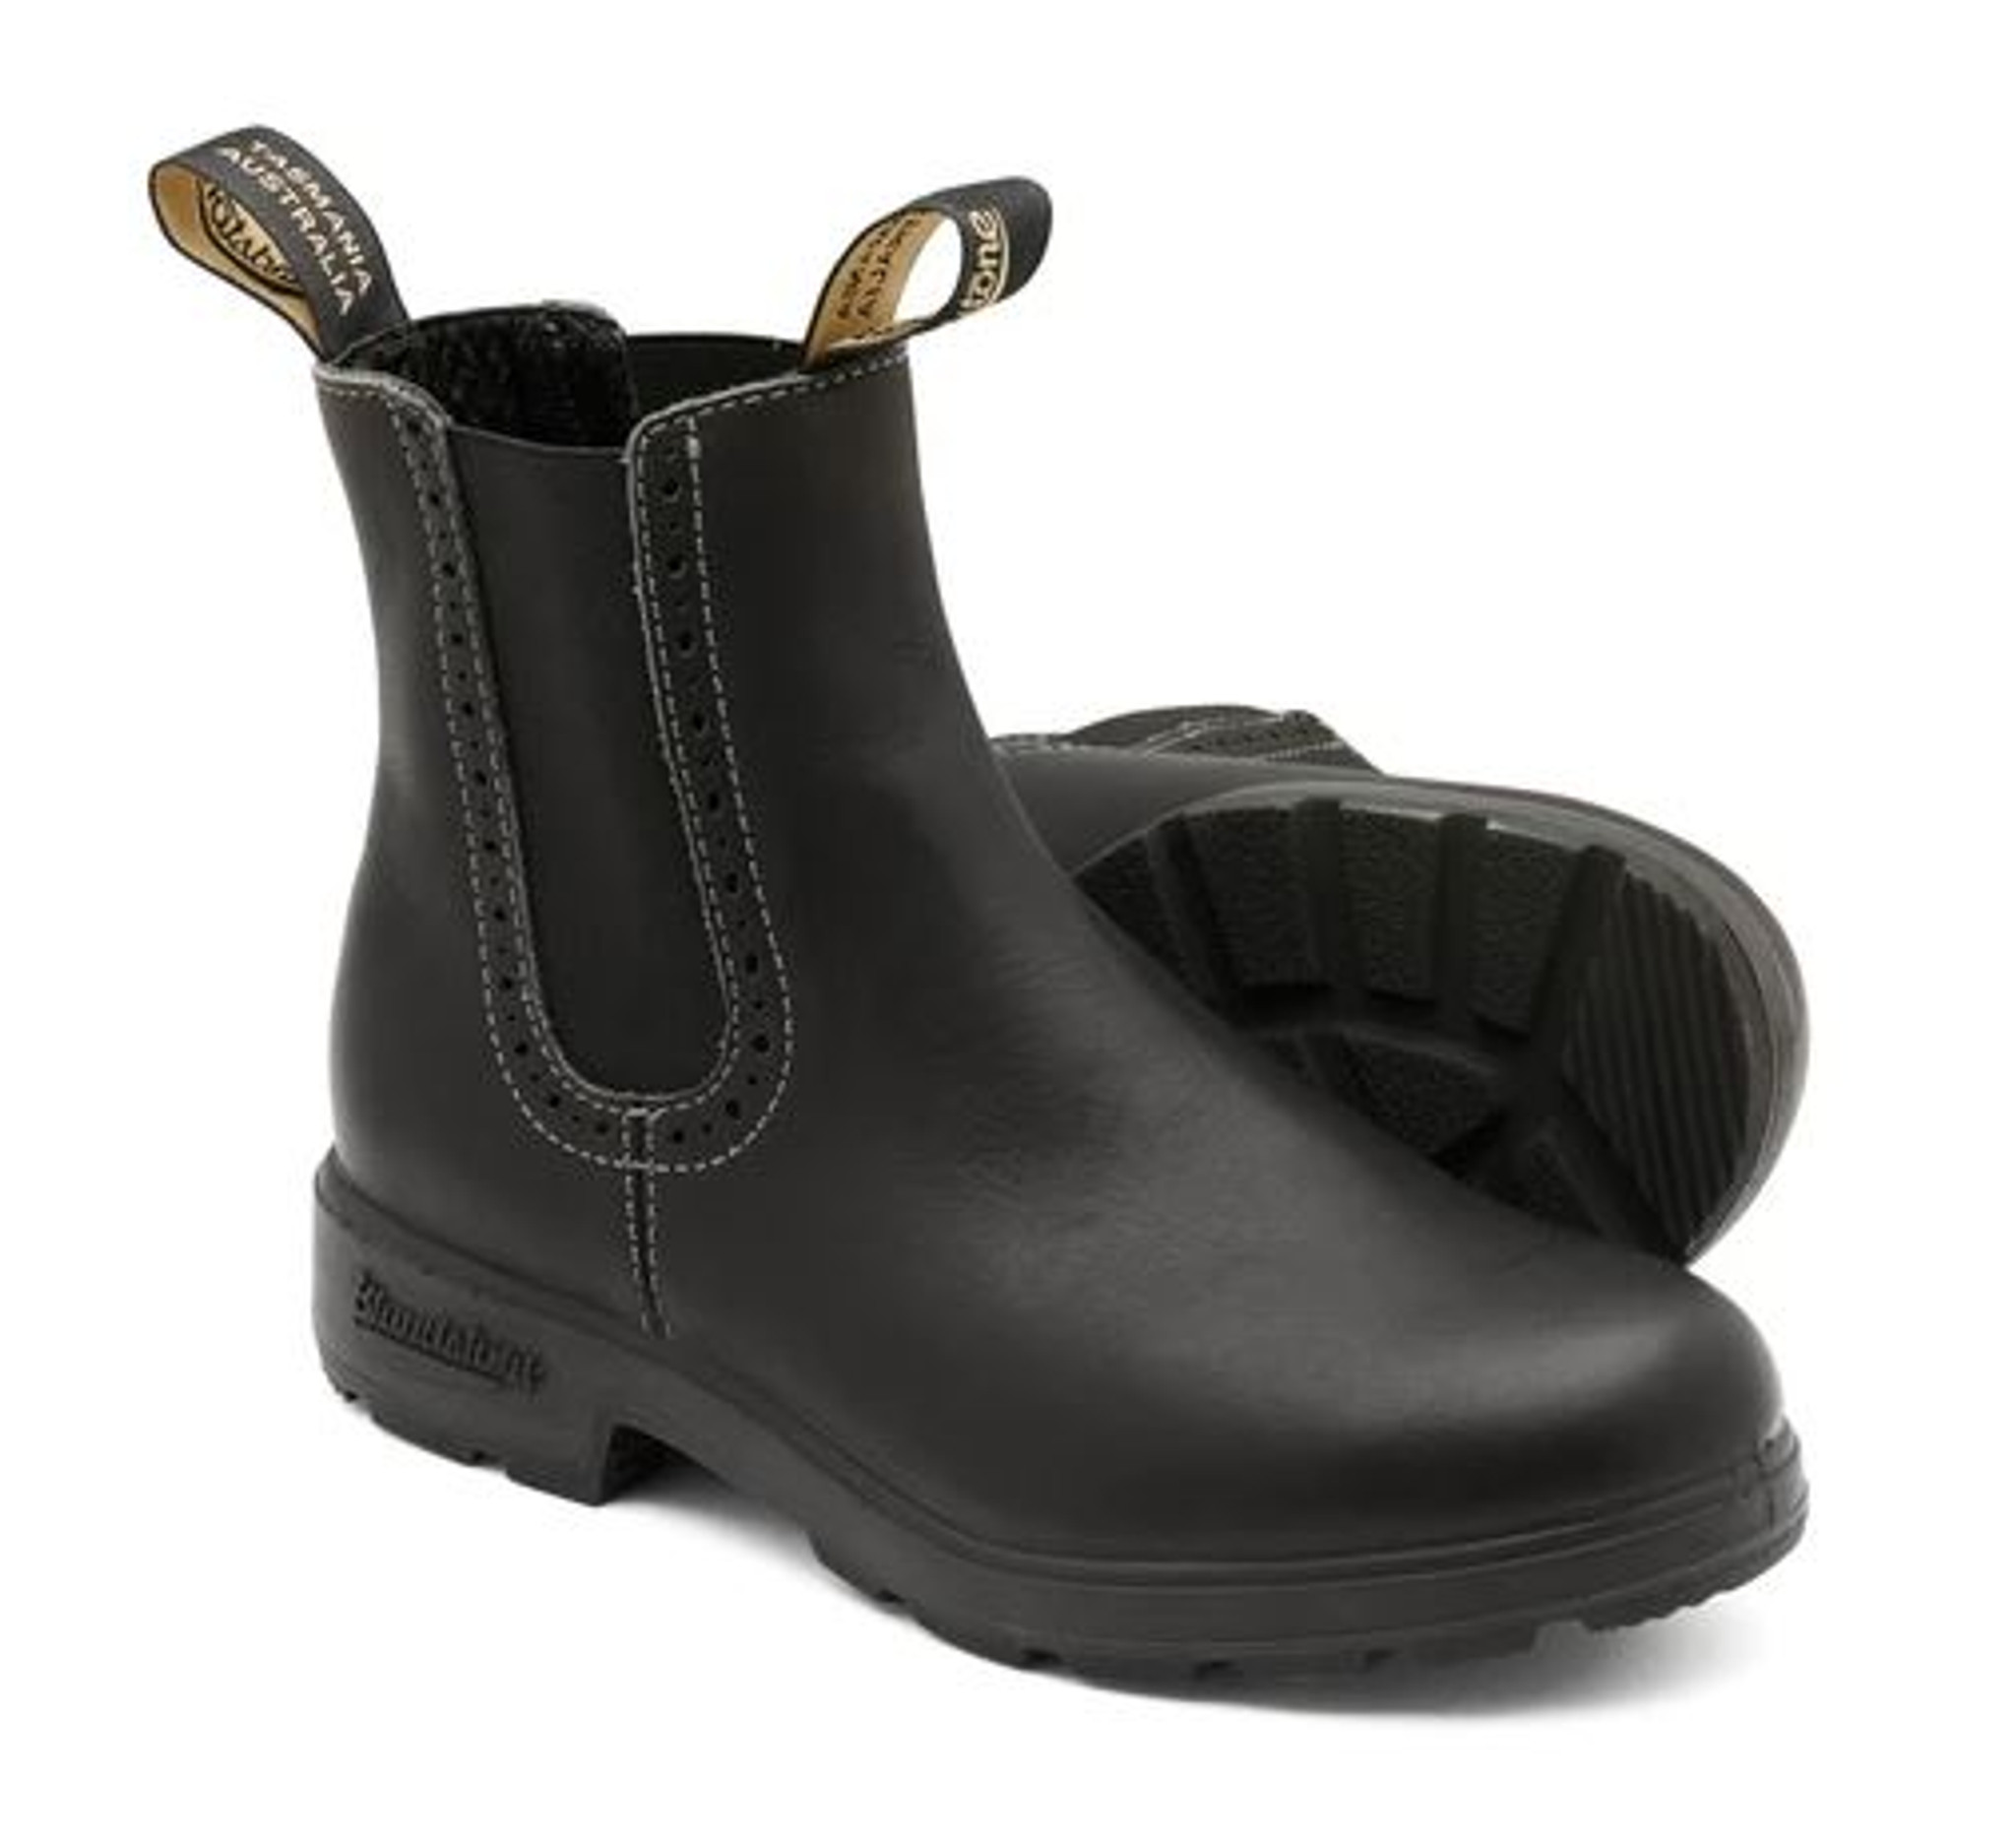 blundstone 1448 review